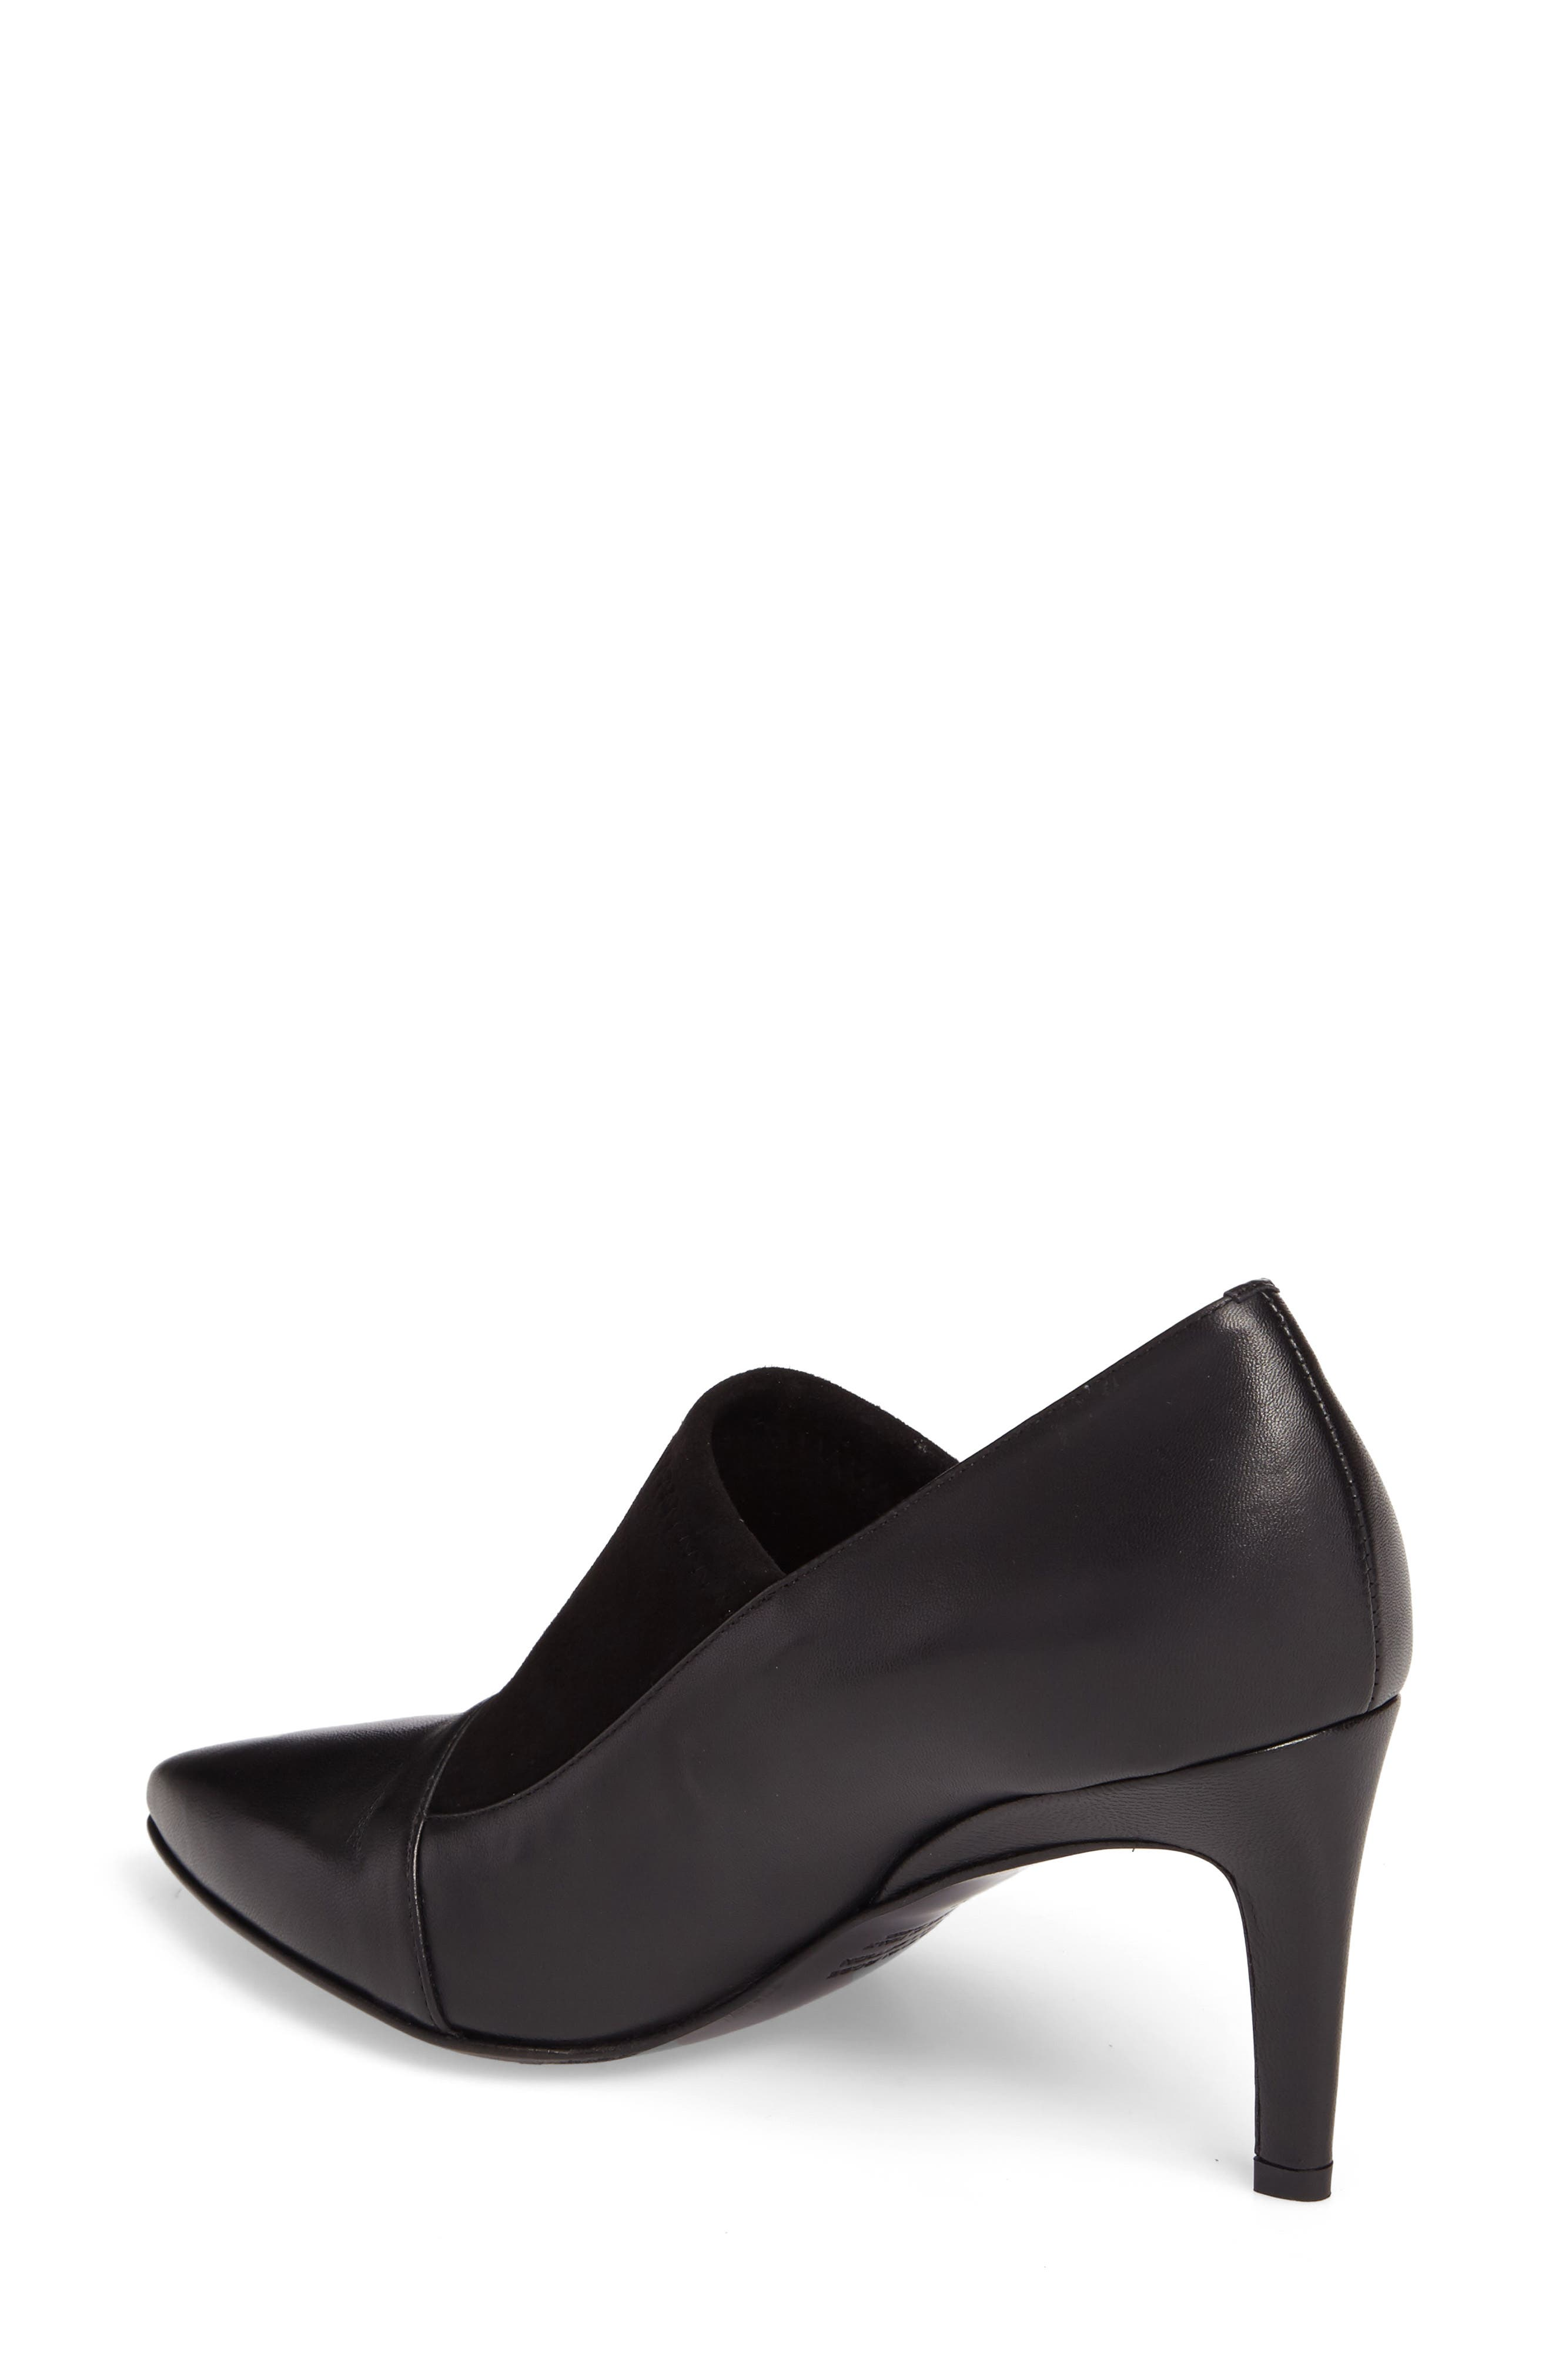 Ghita Pointy Toe Pump,                             Alternate thumbnail 2, color,                             Black Leather